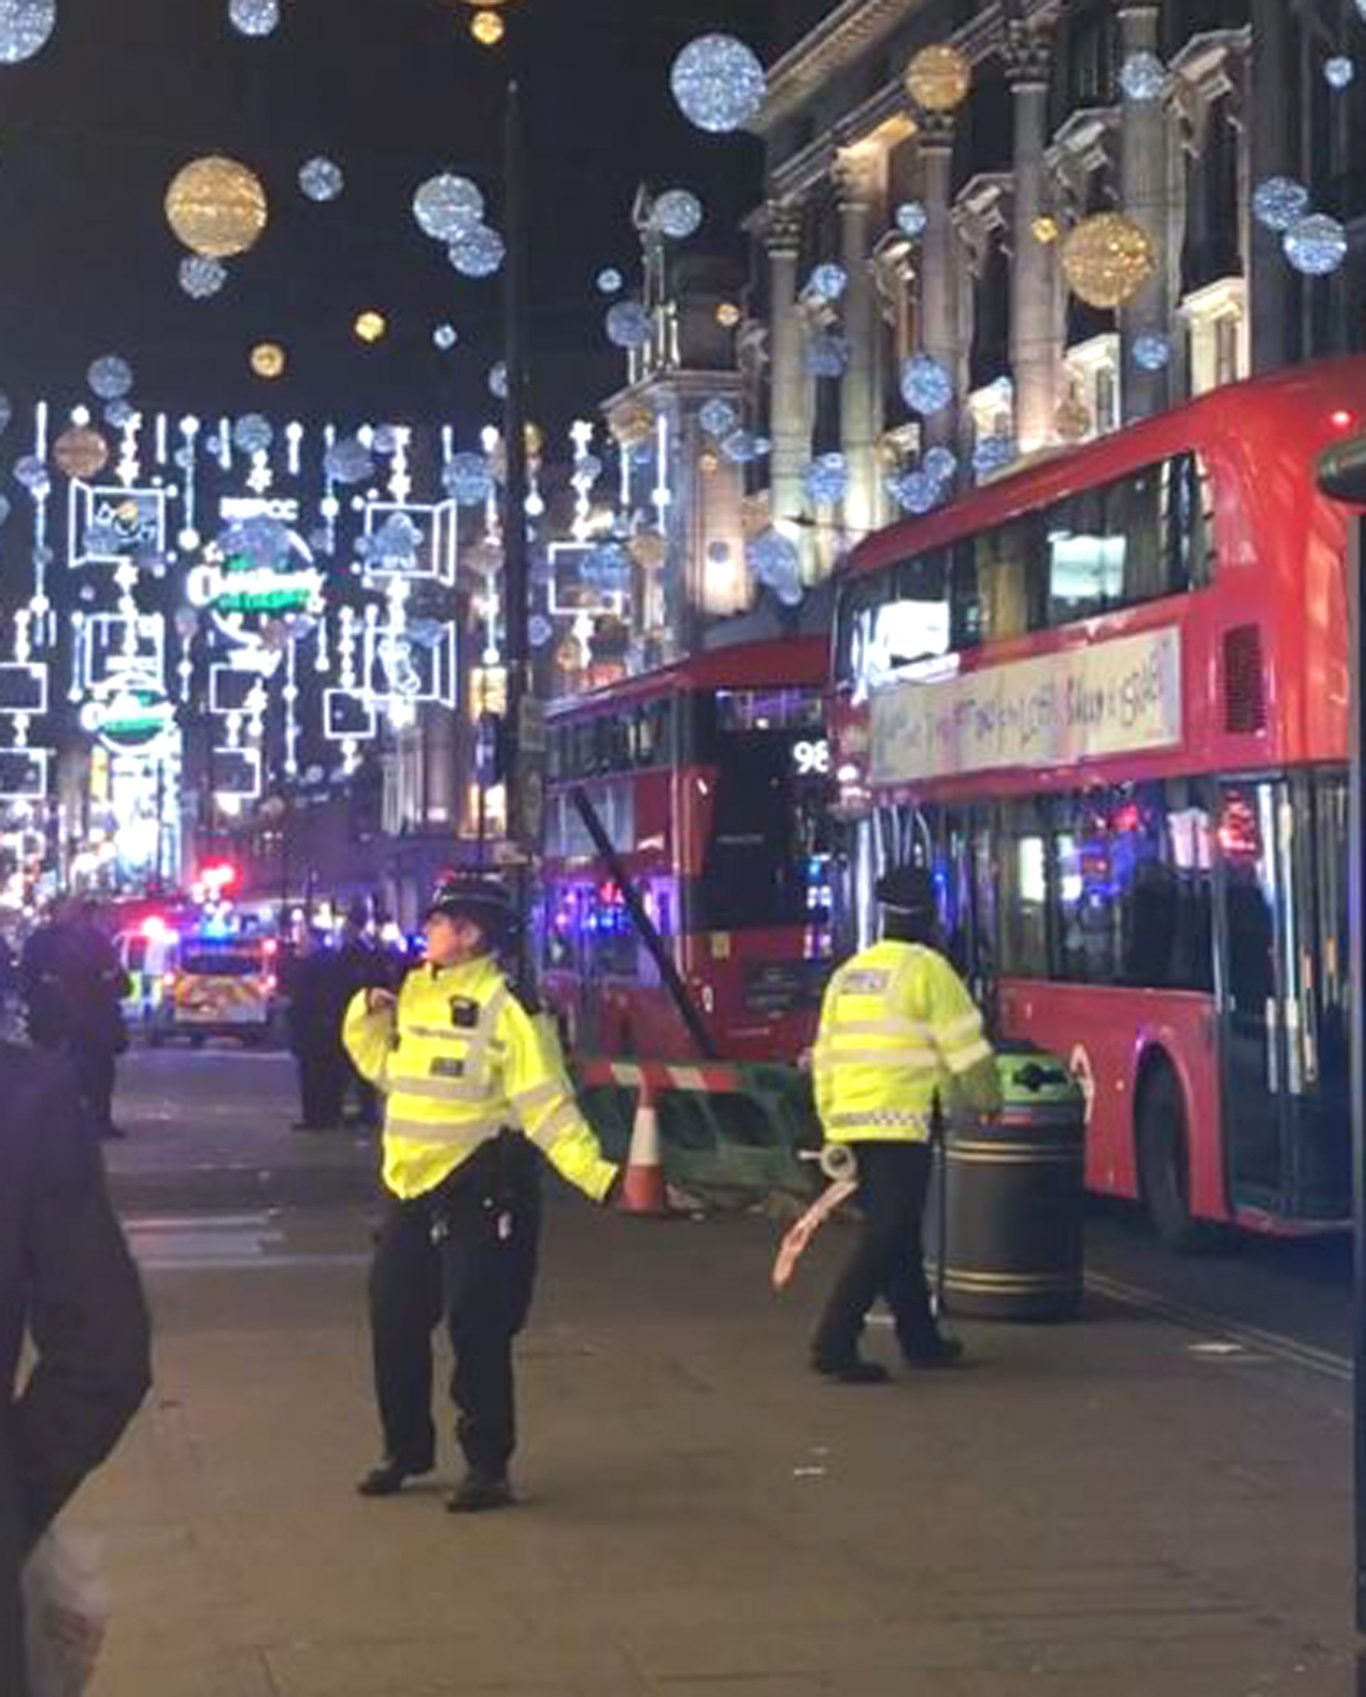 The scene in Oxford Street as police responded (Georgina Stubbs/PA)